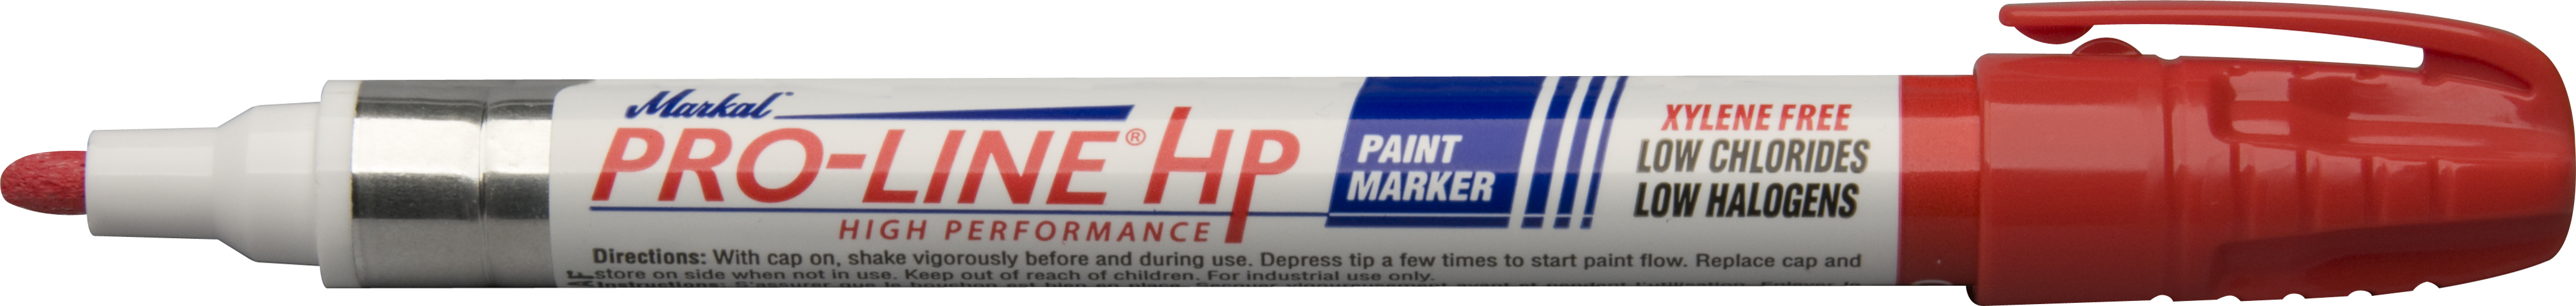 Markal Pro Line HP Paint Marker - Yellow